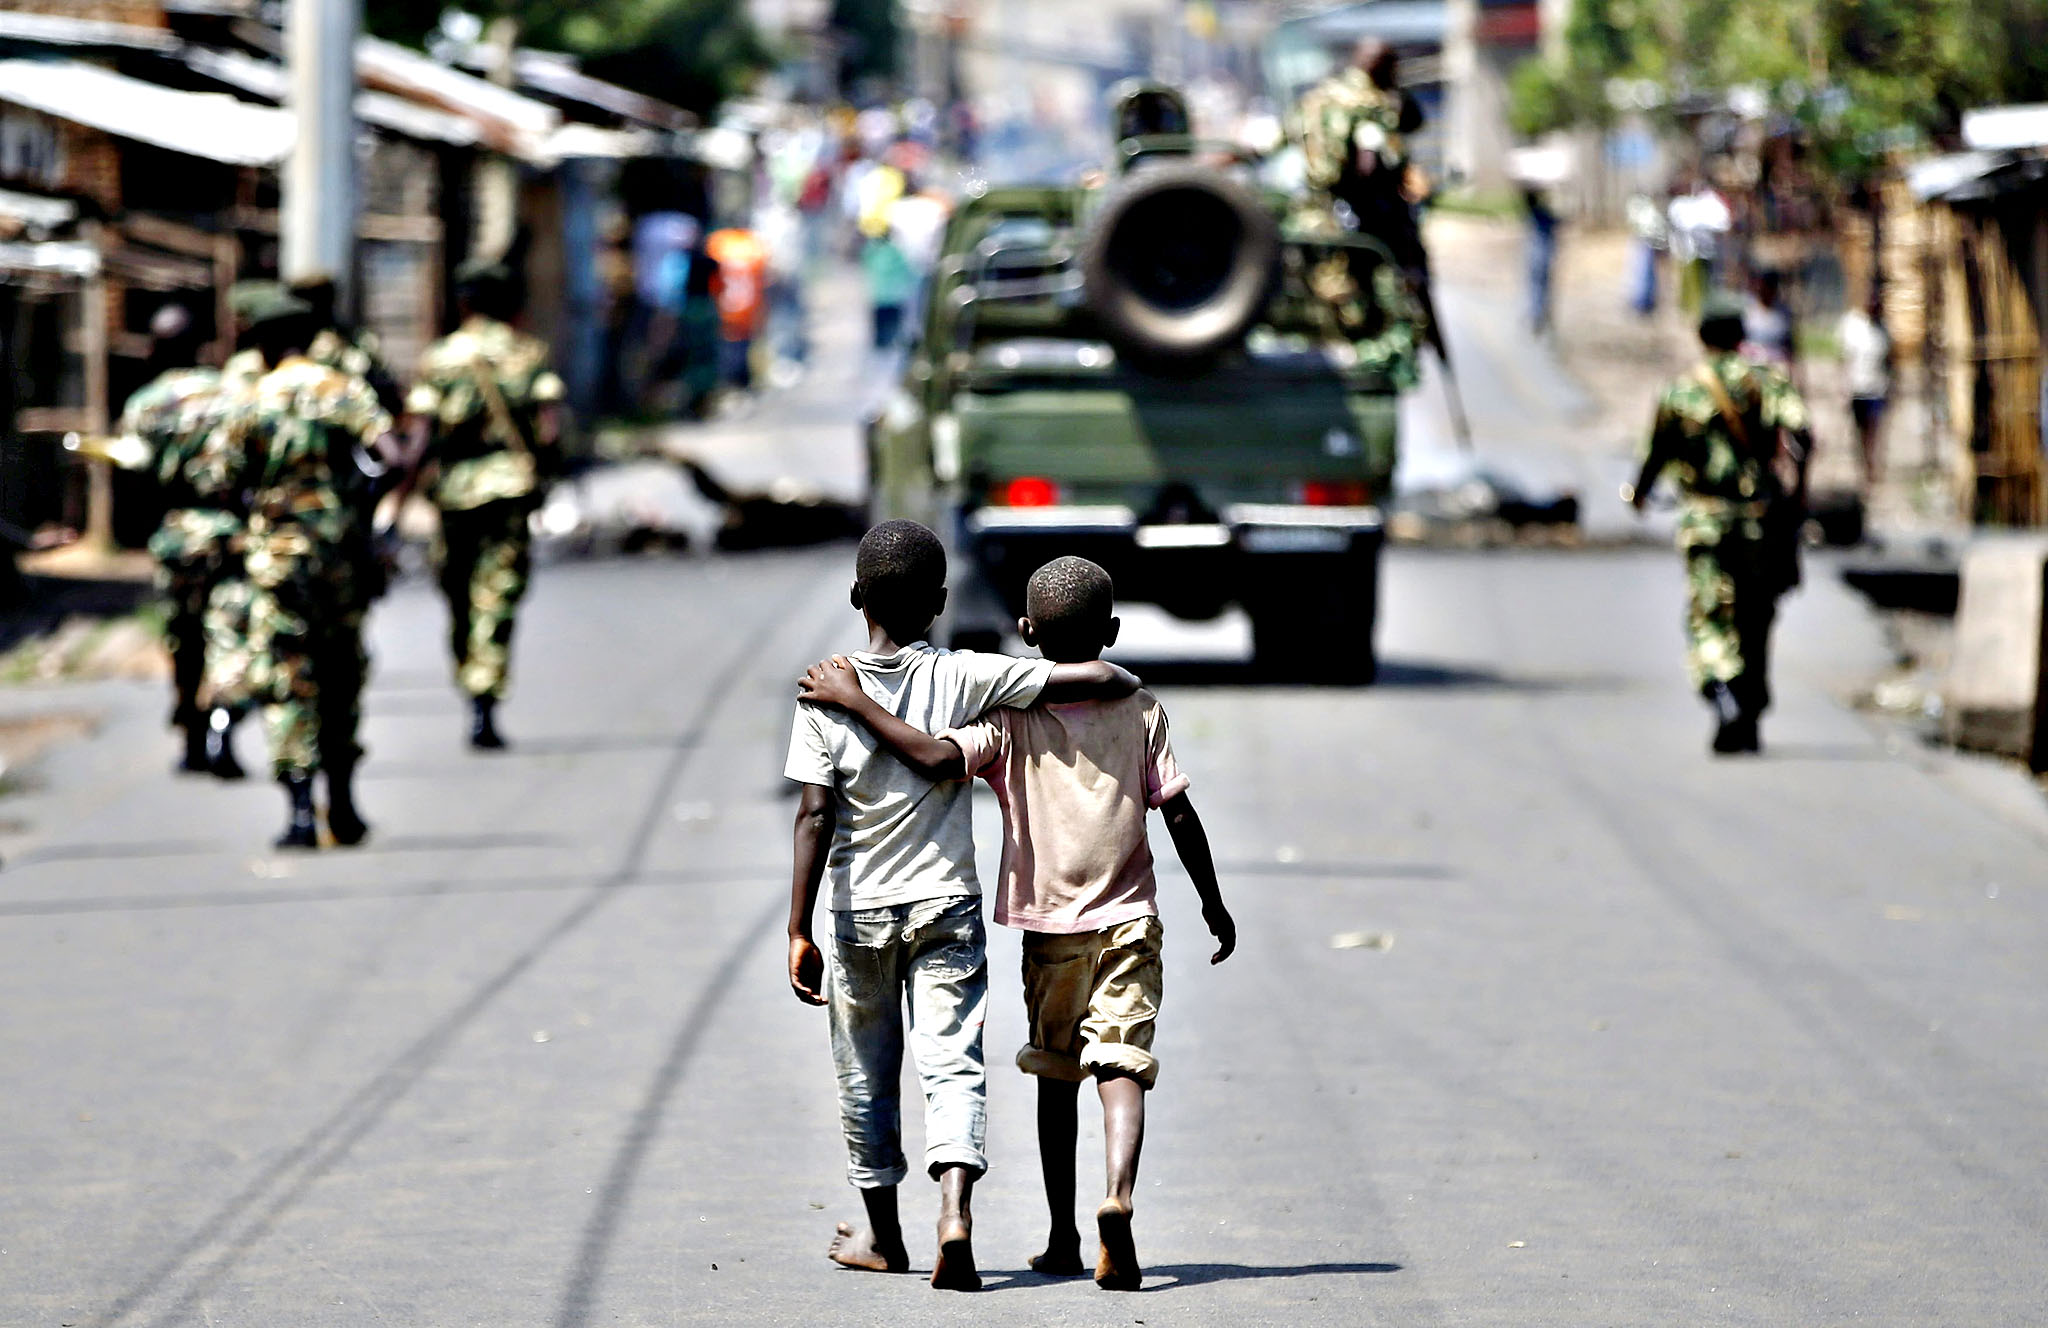 Boys walk behind patrolling soldiers in Bujumbura, Burundi, May 15, 2015. Burundian forces arrested the leader of a failed coup on Friday and President Pierre Nkurunziza returned to the capital, his spokesman said, but protesters pledged to go back to the streets, setting the stage for more clashes.